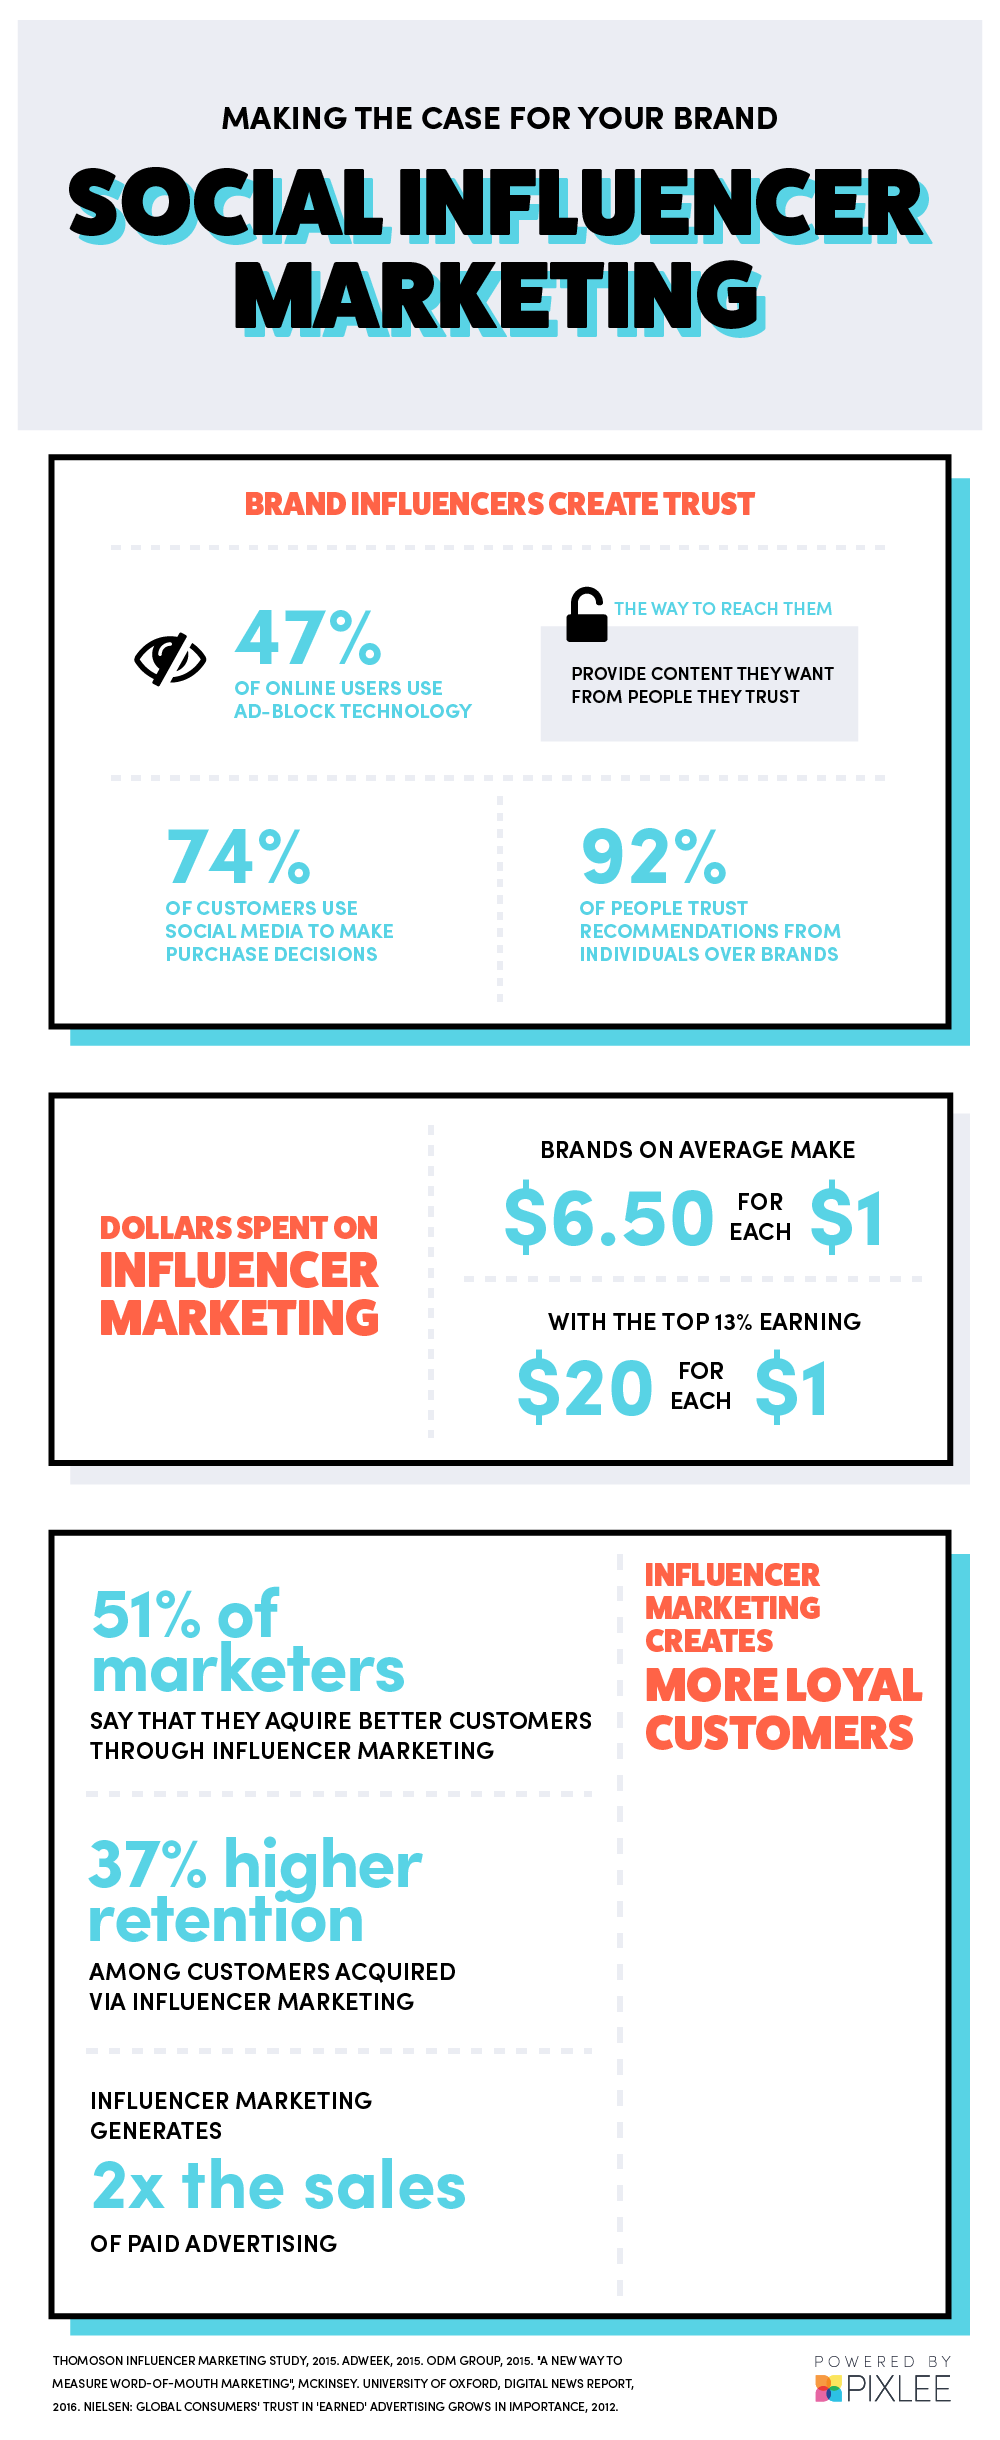 Social-Influencer-Marketing-Infographic.png